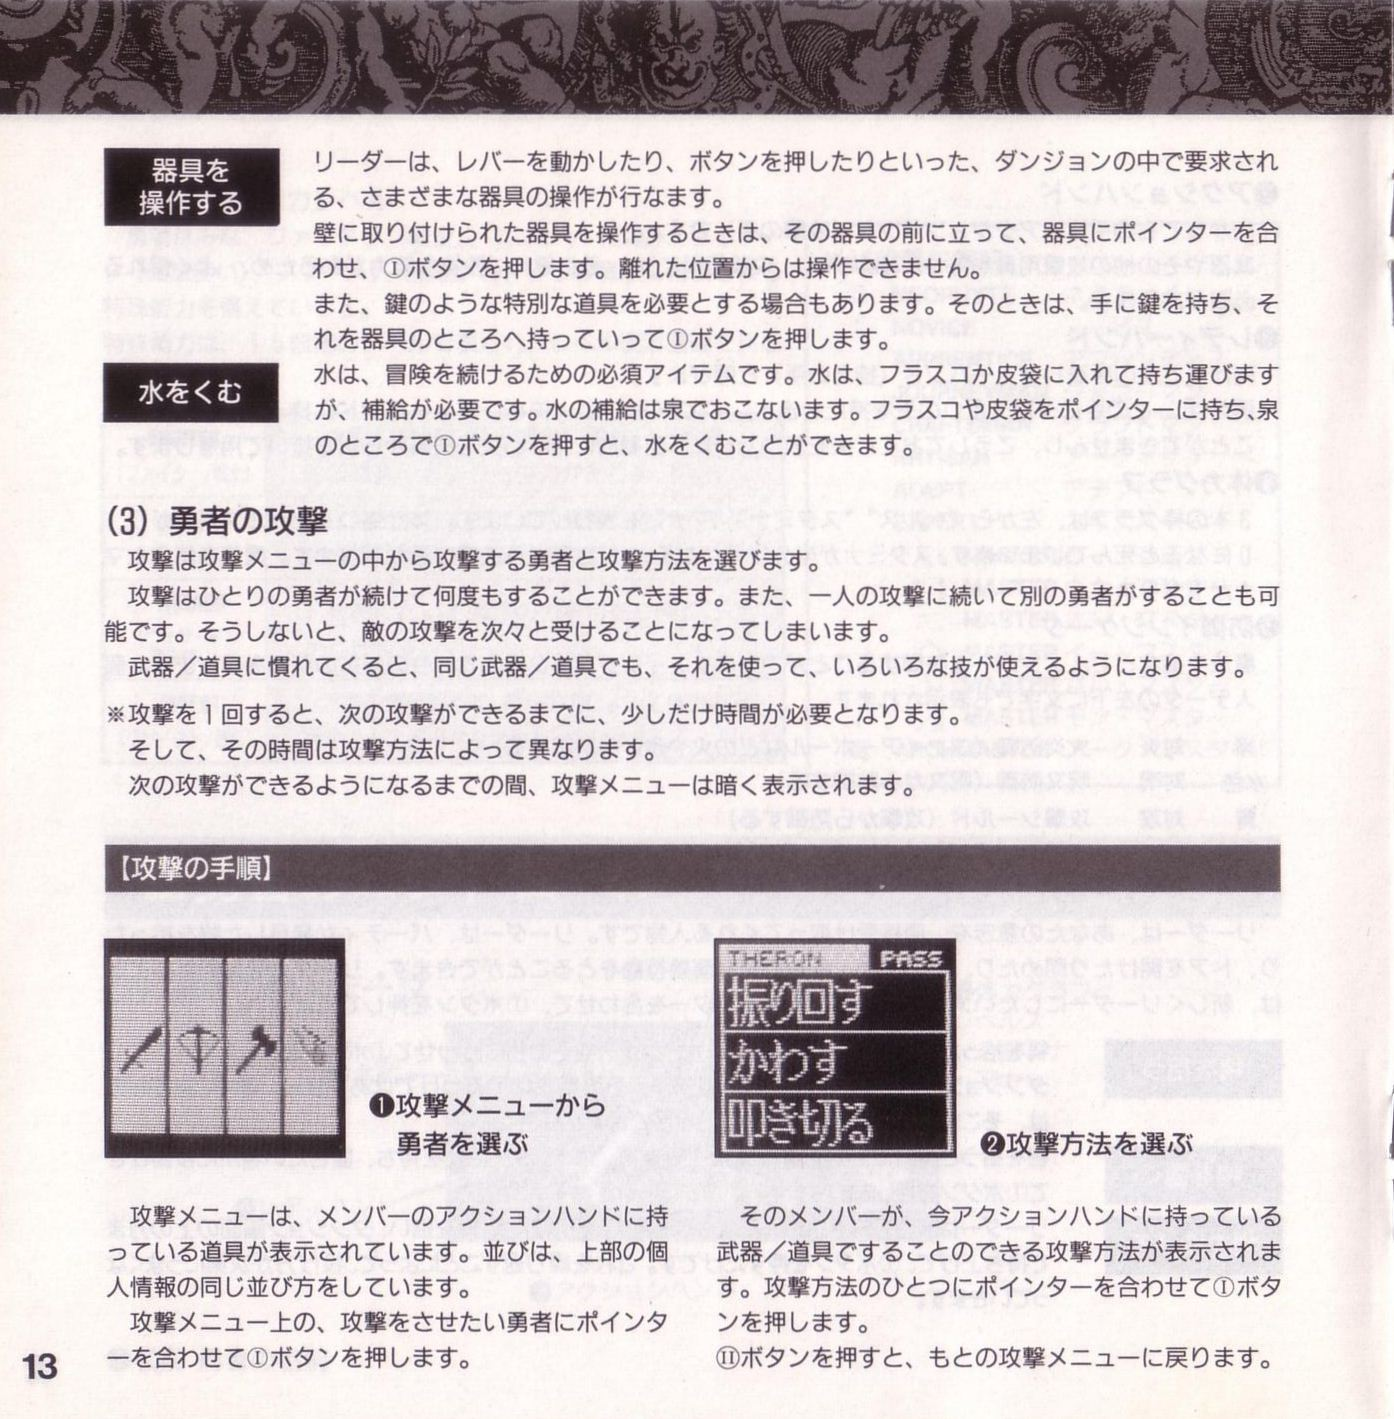 Game - Theron's Quest - JP - PC Engine - Booklet - Page 016 - Scan